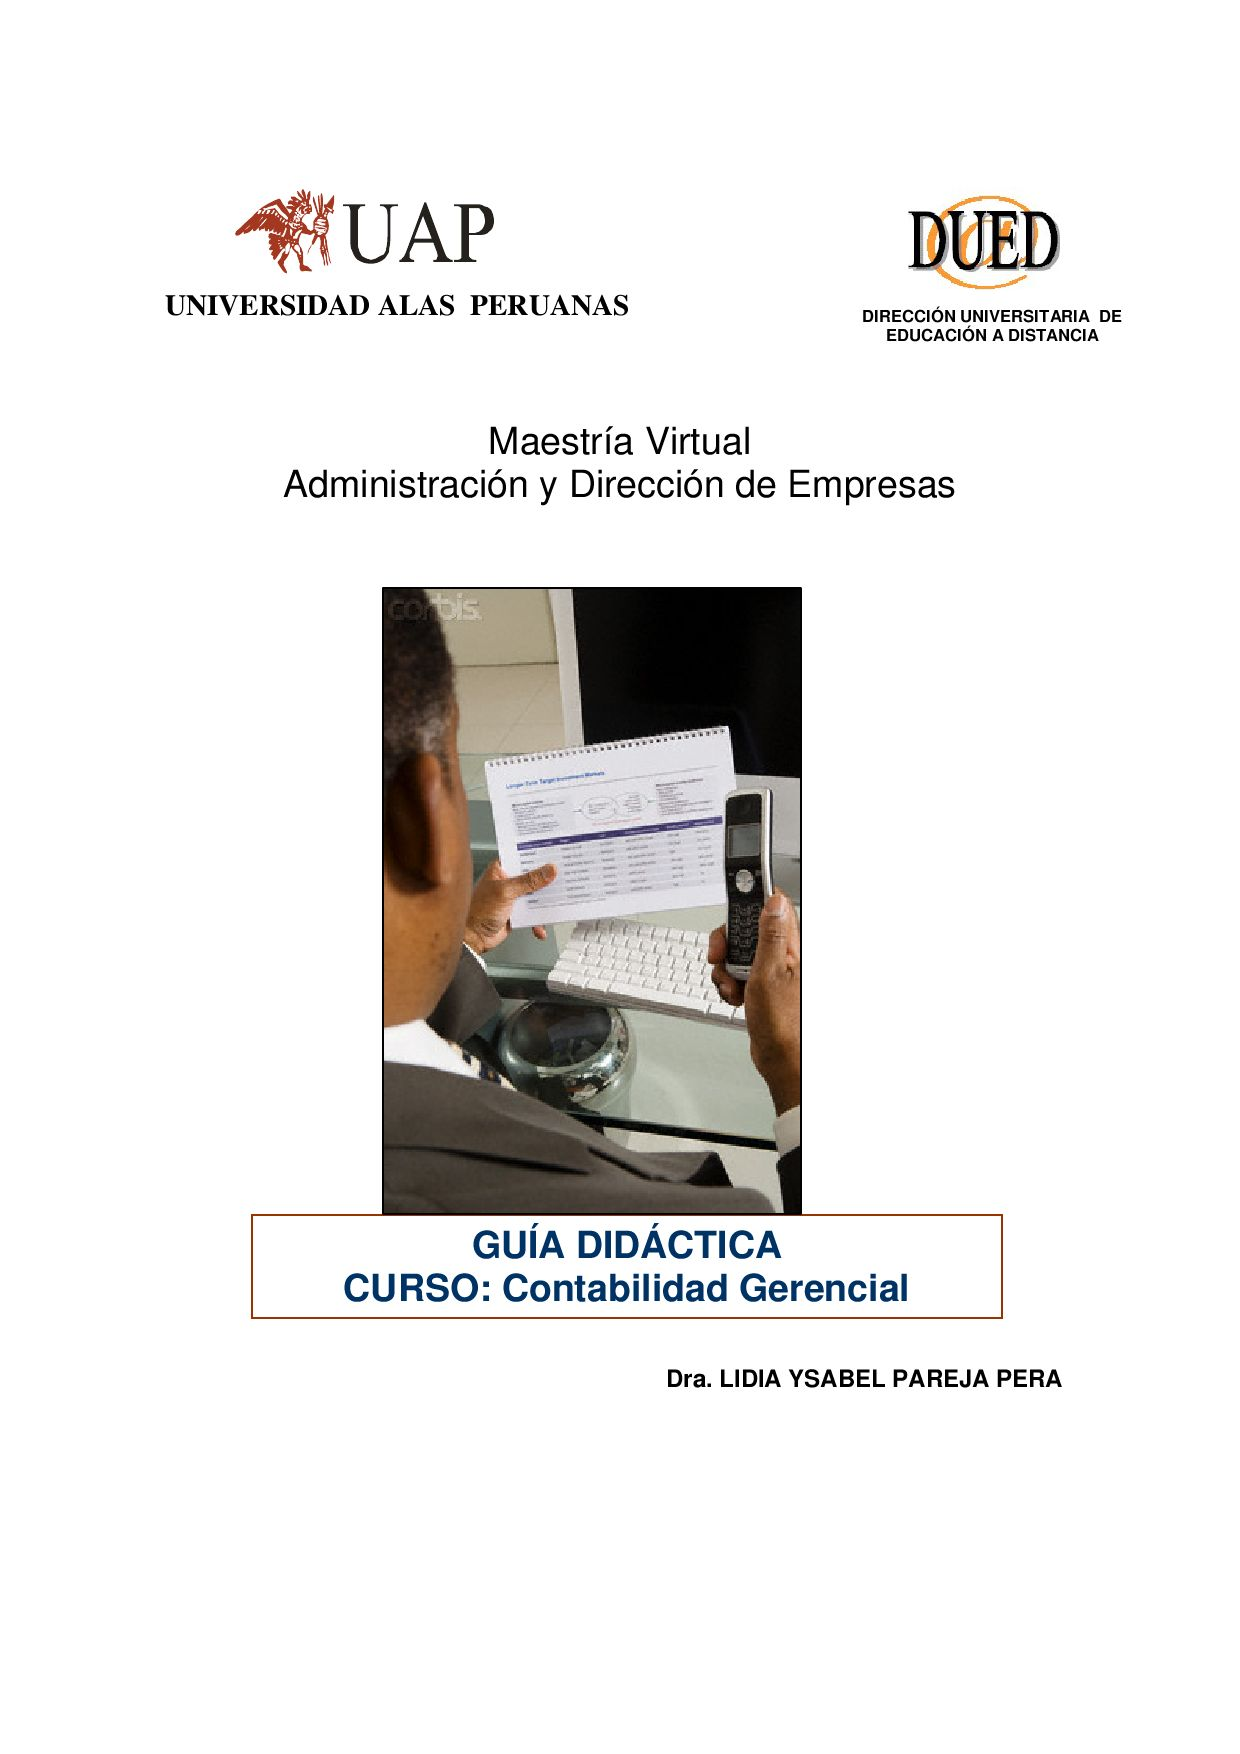 Contabilidad Gerencial by ely torres - issuu